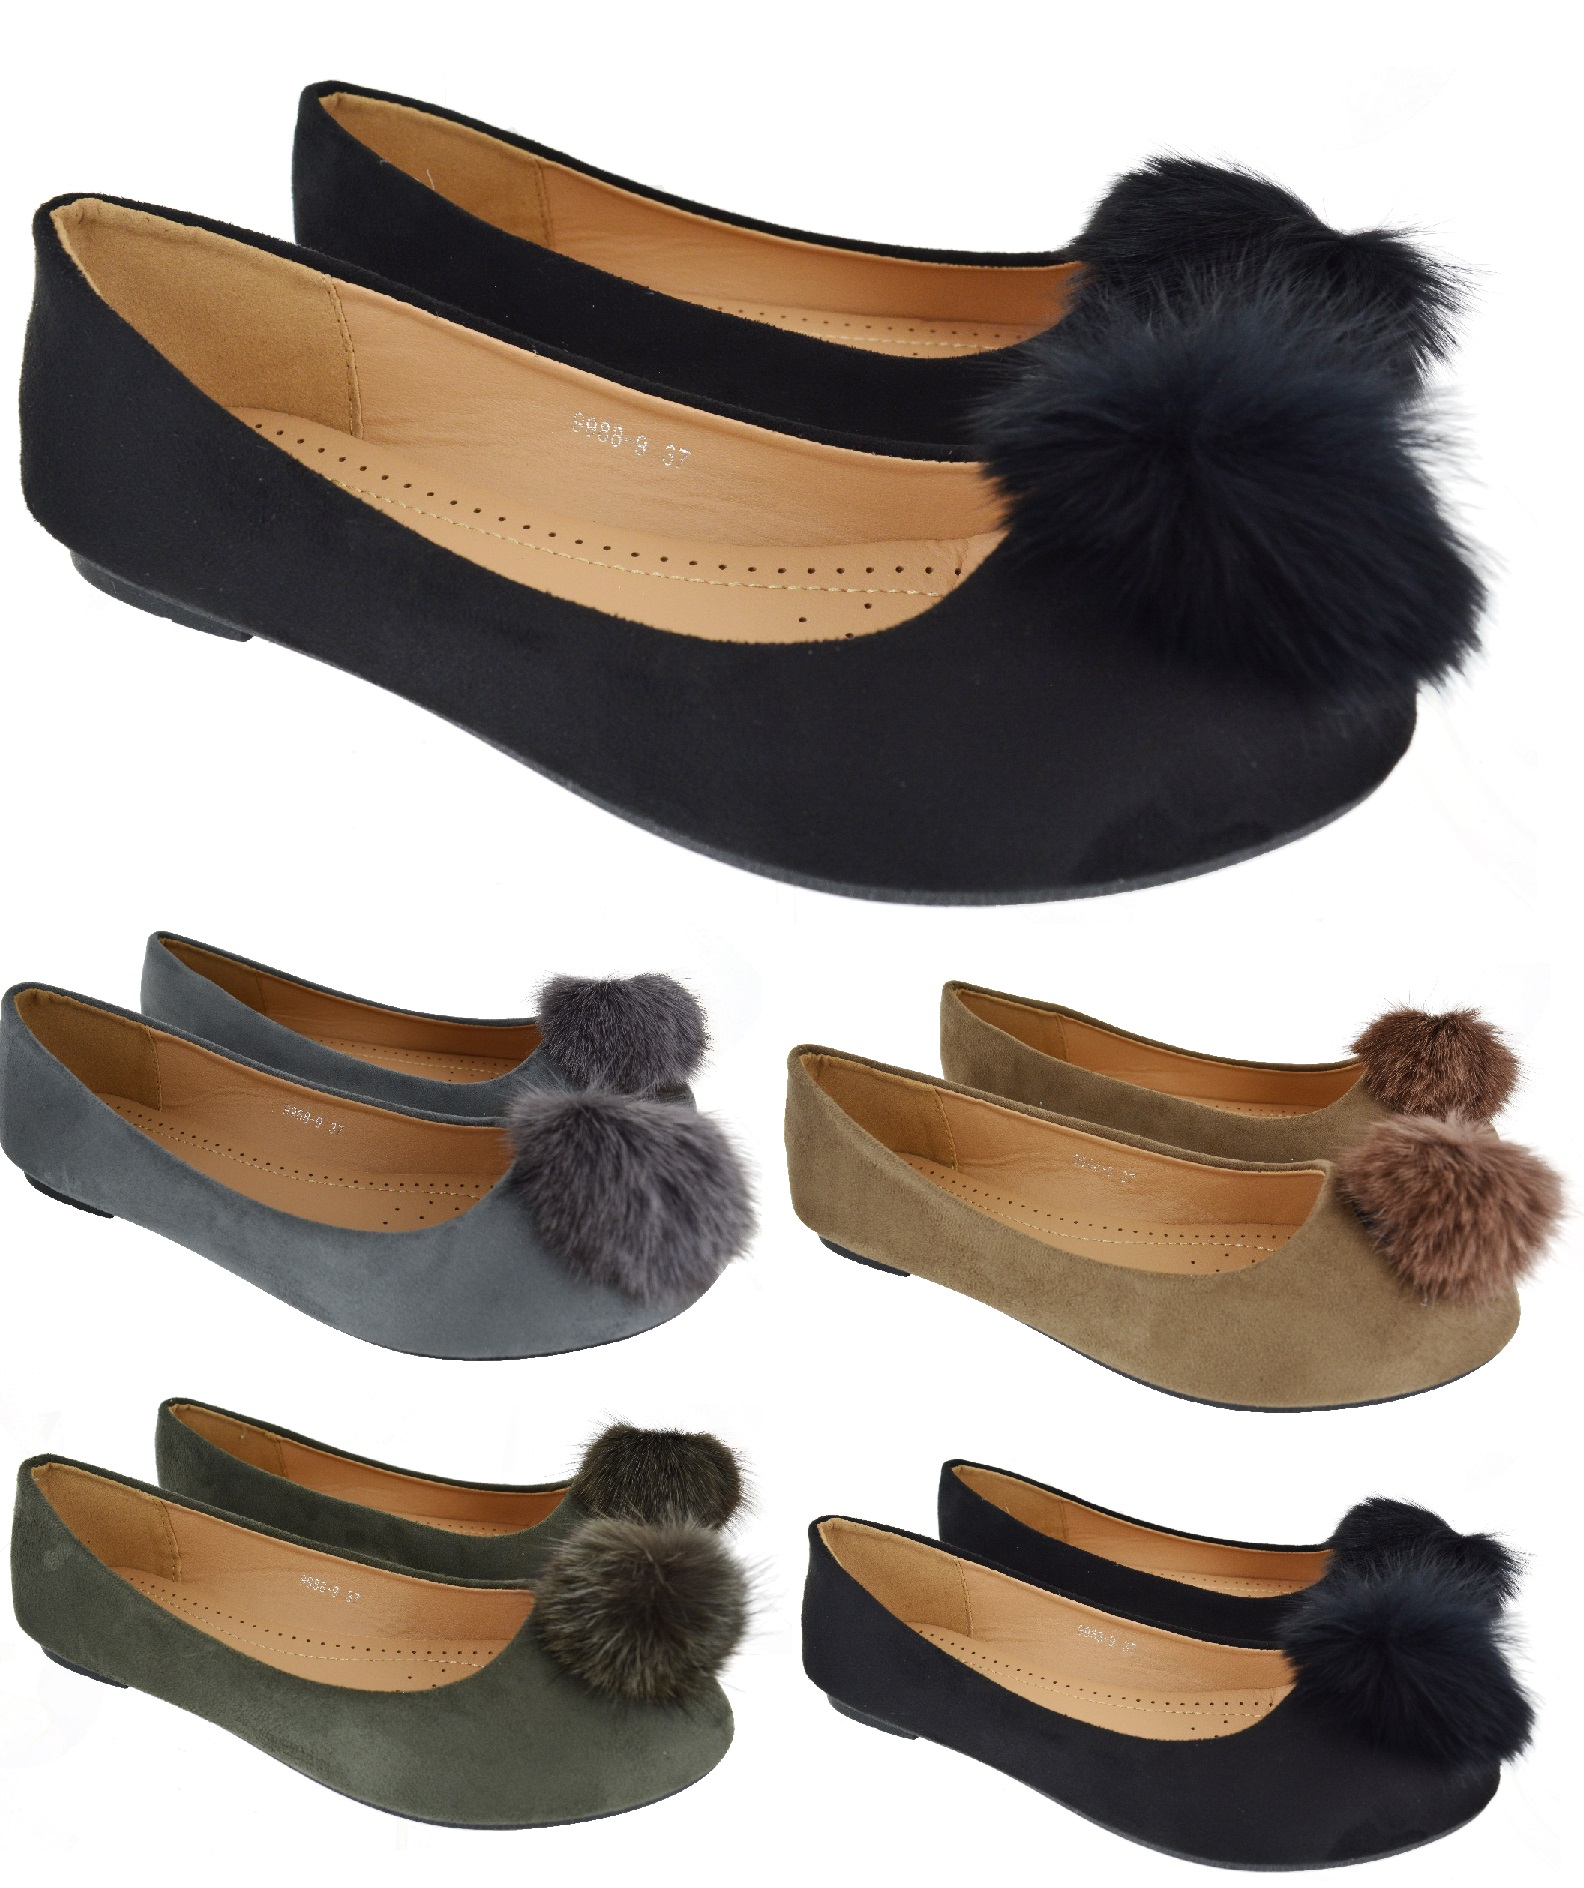 92d25cdad184 Sentinel LADIES WOMENS FLAT PUMPS BALLET SLIP ON FLUFFY FUR BALL POM POM  DOLLY SHOES SIZE